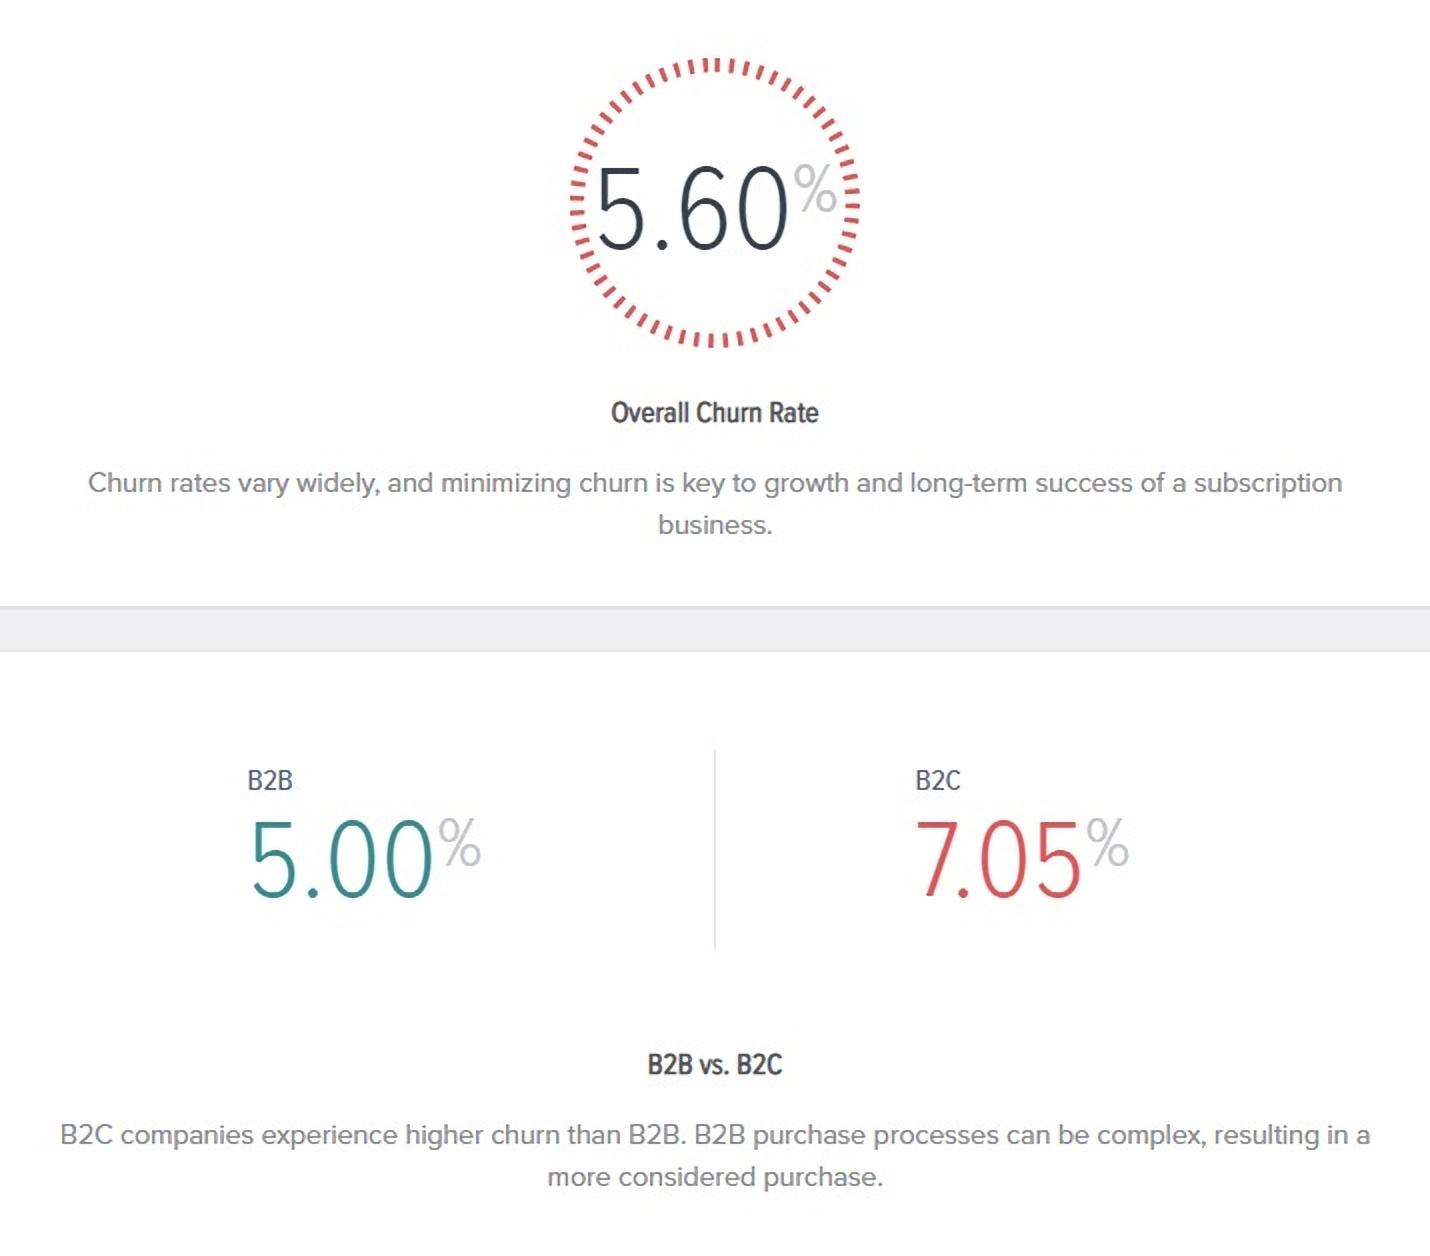 Overall churn rate example